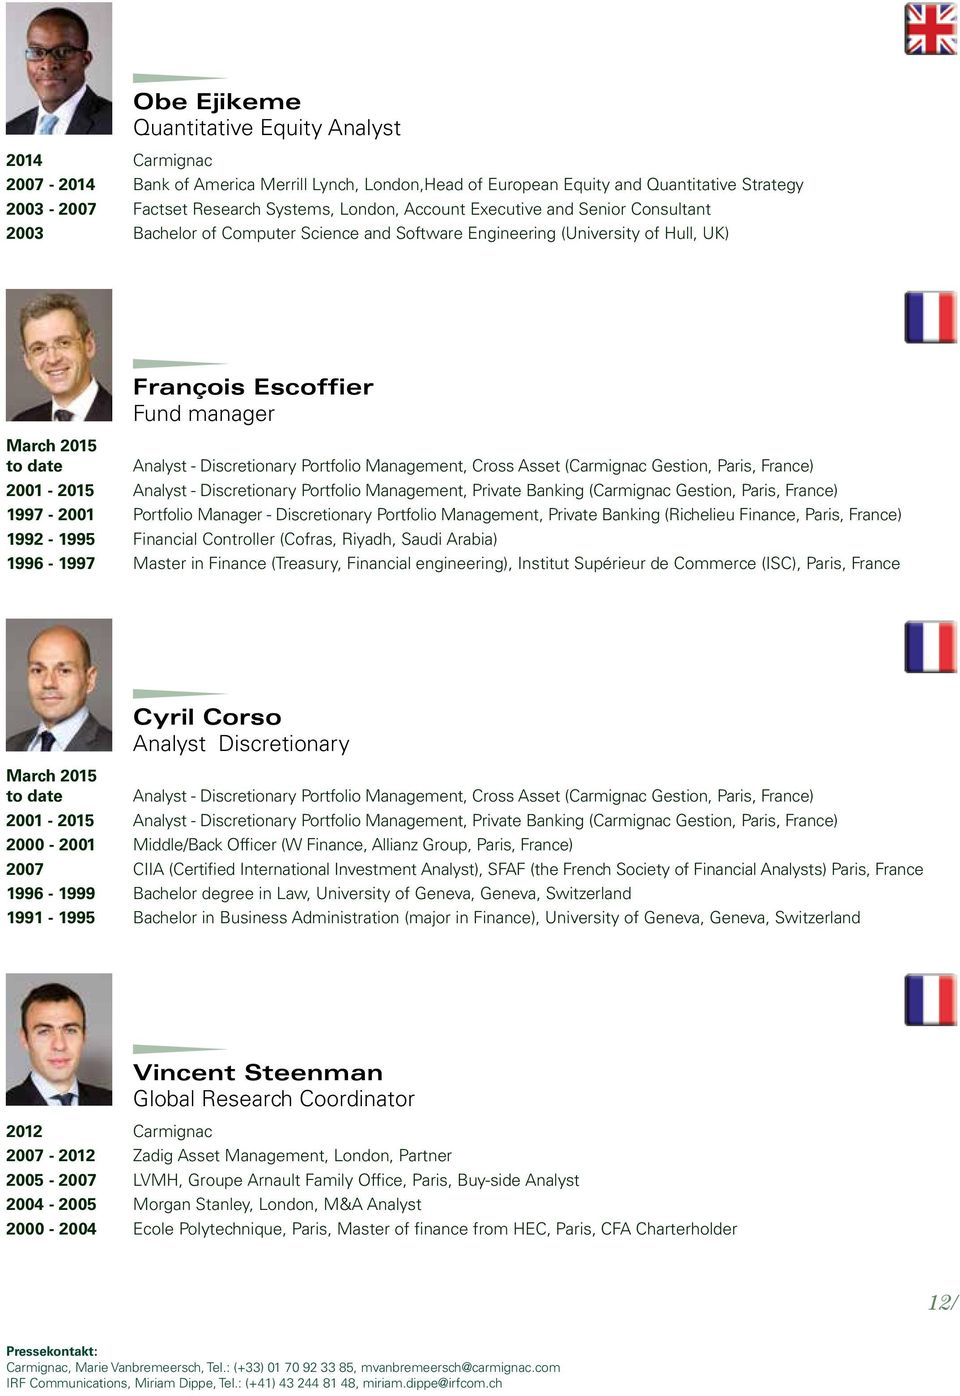 Portfolio Management, Cross Asset (Carmignac Gestion, Paris, France) 2001-2015 Analyst - Discretionary Portfolio Management, Private Banking (Carmignac Gestion, Paris, France) 1997-2001 Portfolio